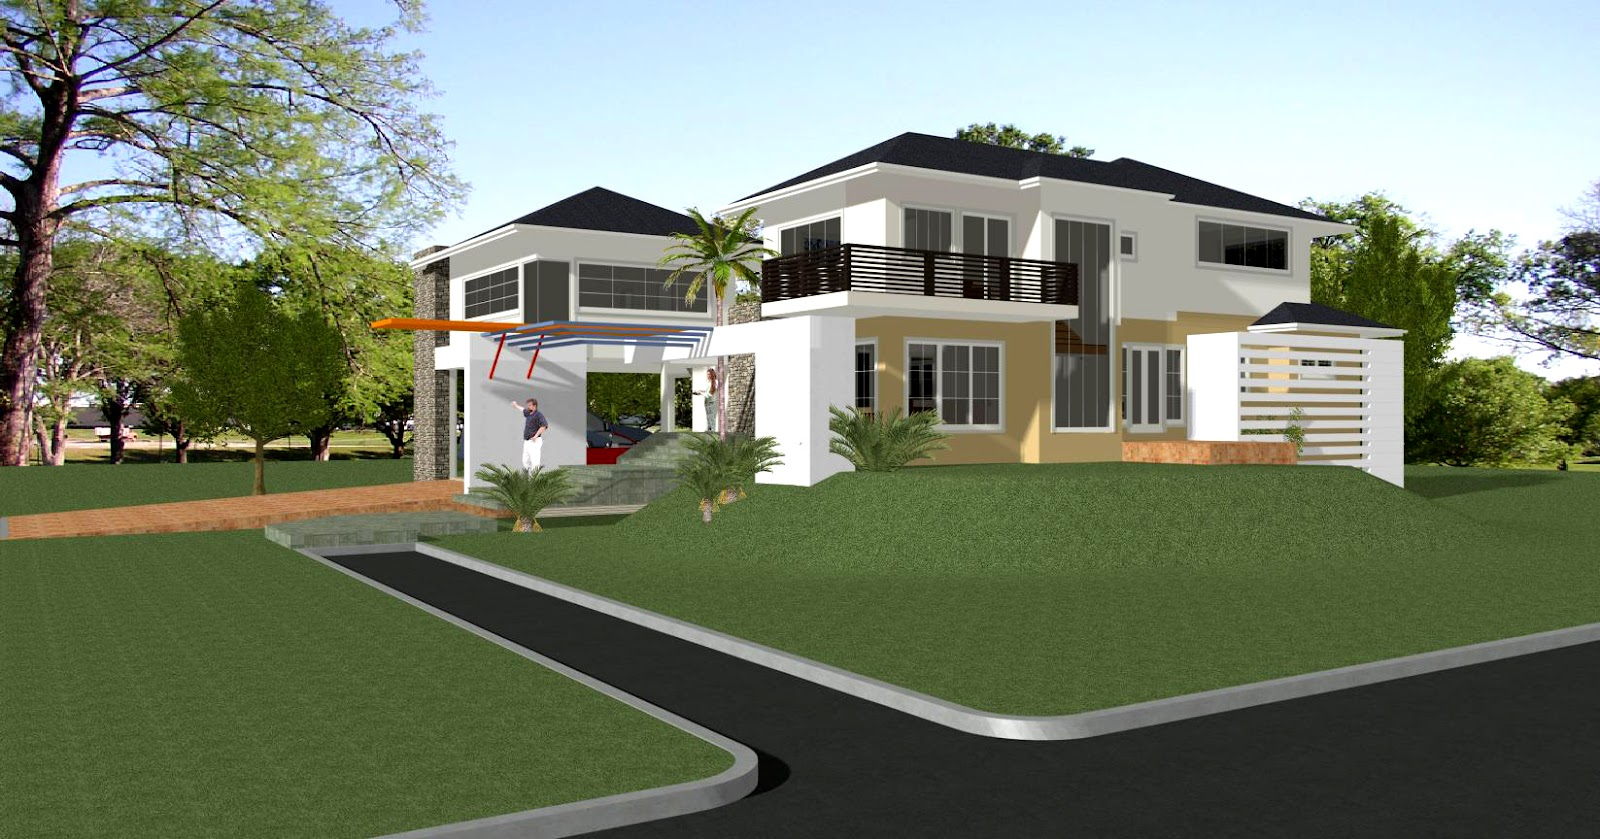 House designs in the philippines in iloilo by erecre group for New home construction plans